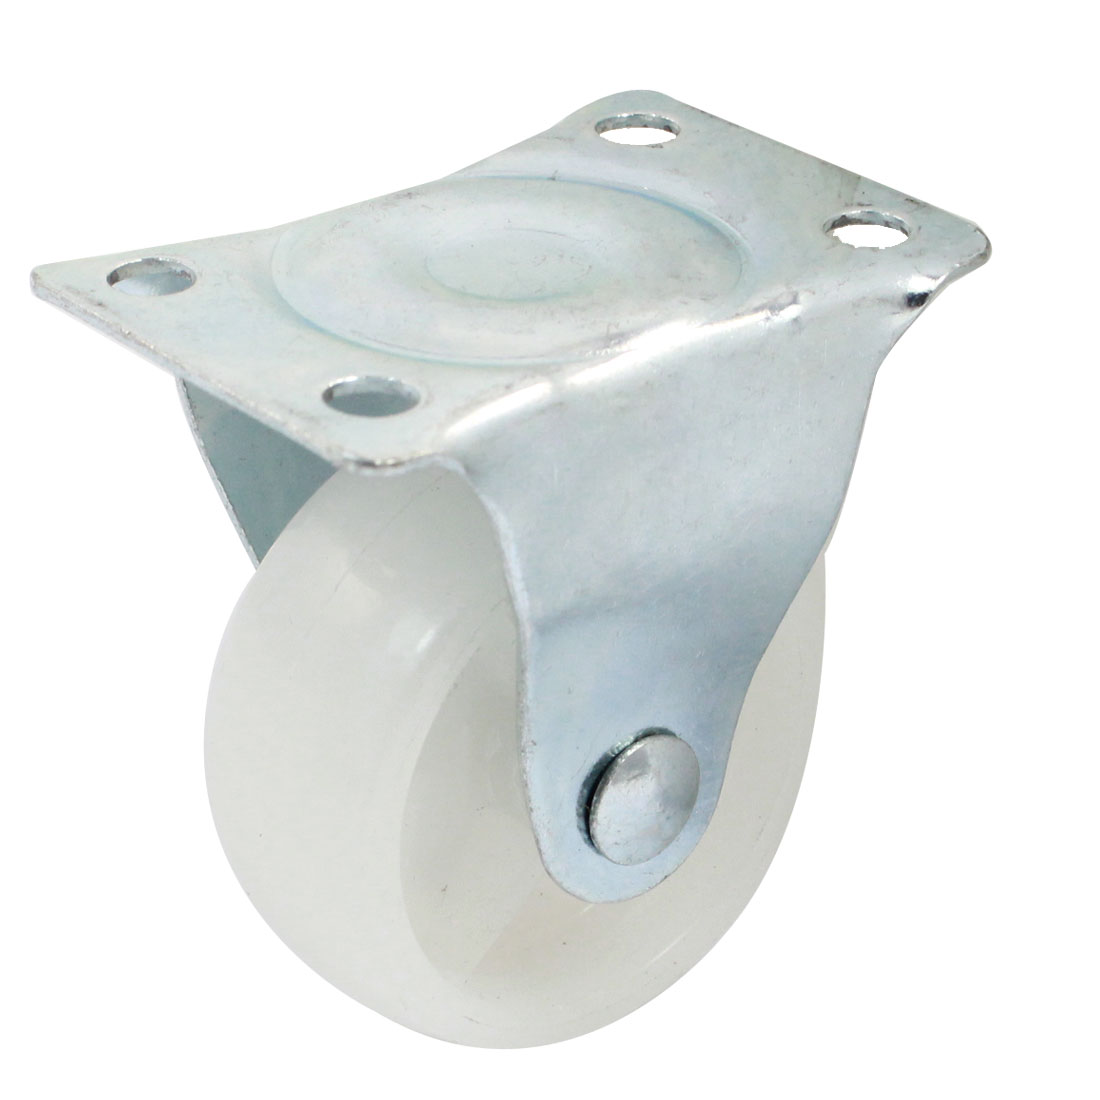 "Shopping Trolley 2"" Round Single Wheel Rectangle Top Plate Fixed Caster"